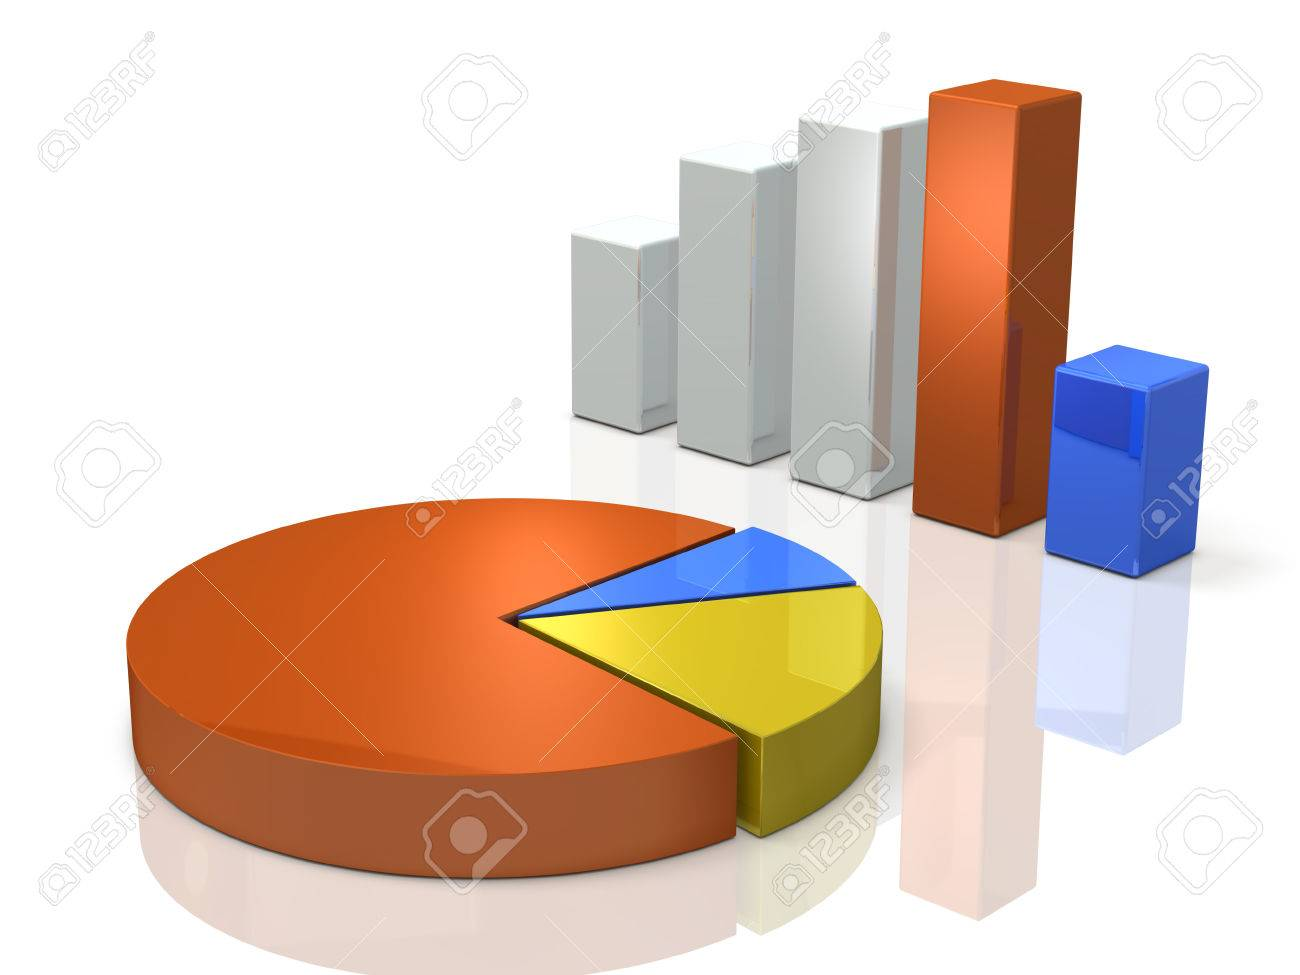 Bar graph and pie chart background image 3d illustration stock bar graph and pie chart background image 3d illustration stock illustration 65966050 nvjuhfo Choice Image